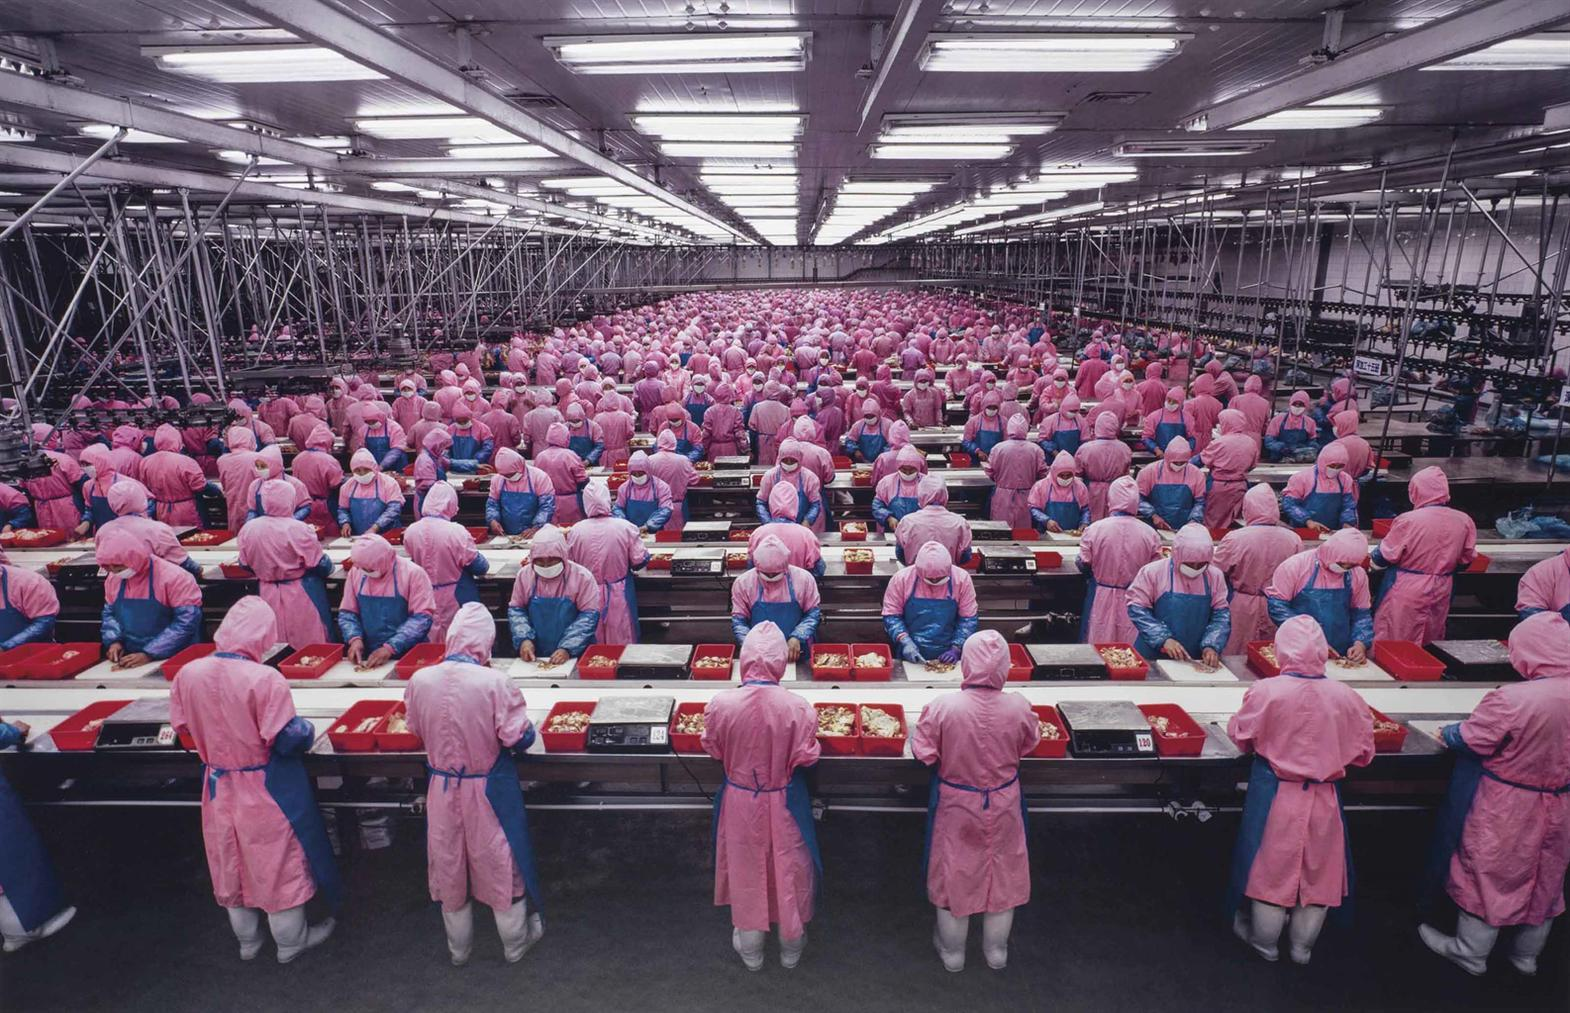 Edward Burtynsky-Manufacturing #17, Deda Chicken Processing Plant, Dehui City, Jilin Province, China-2005